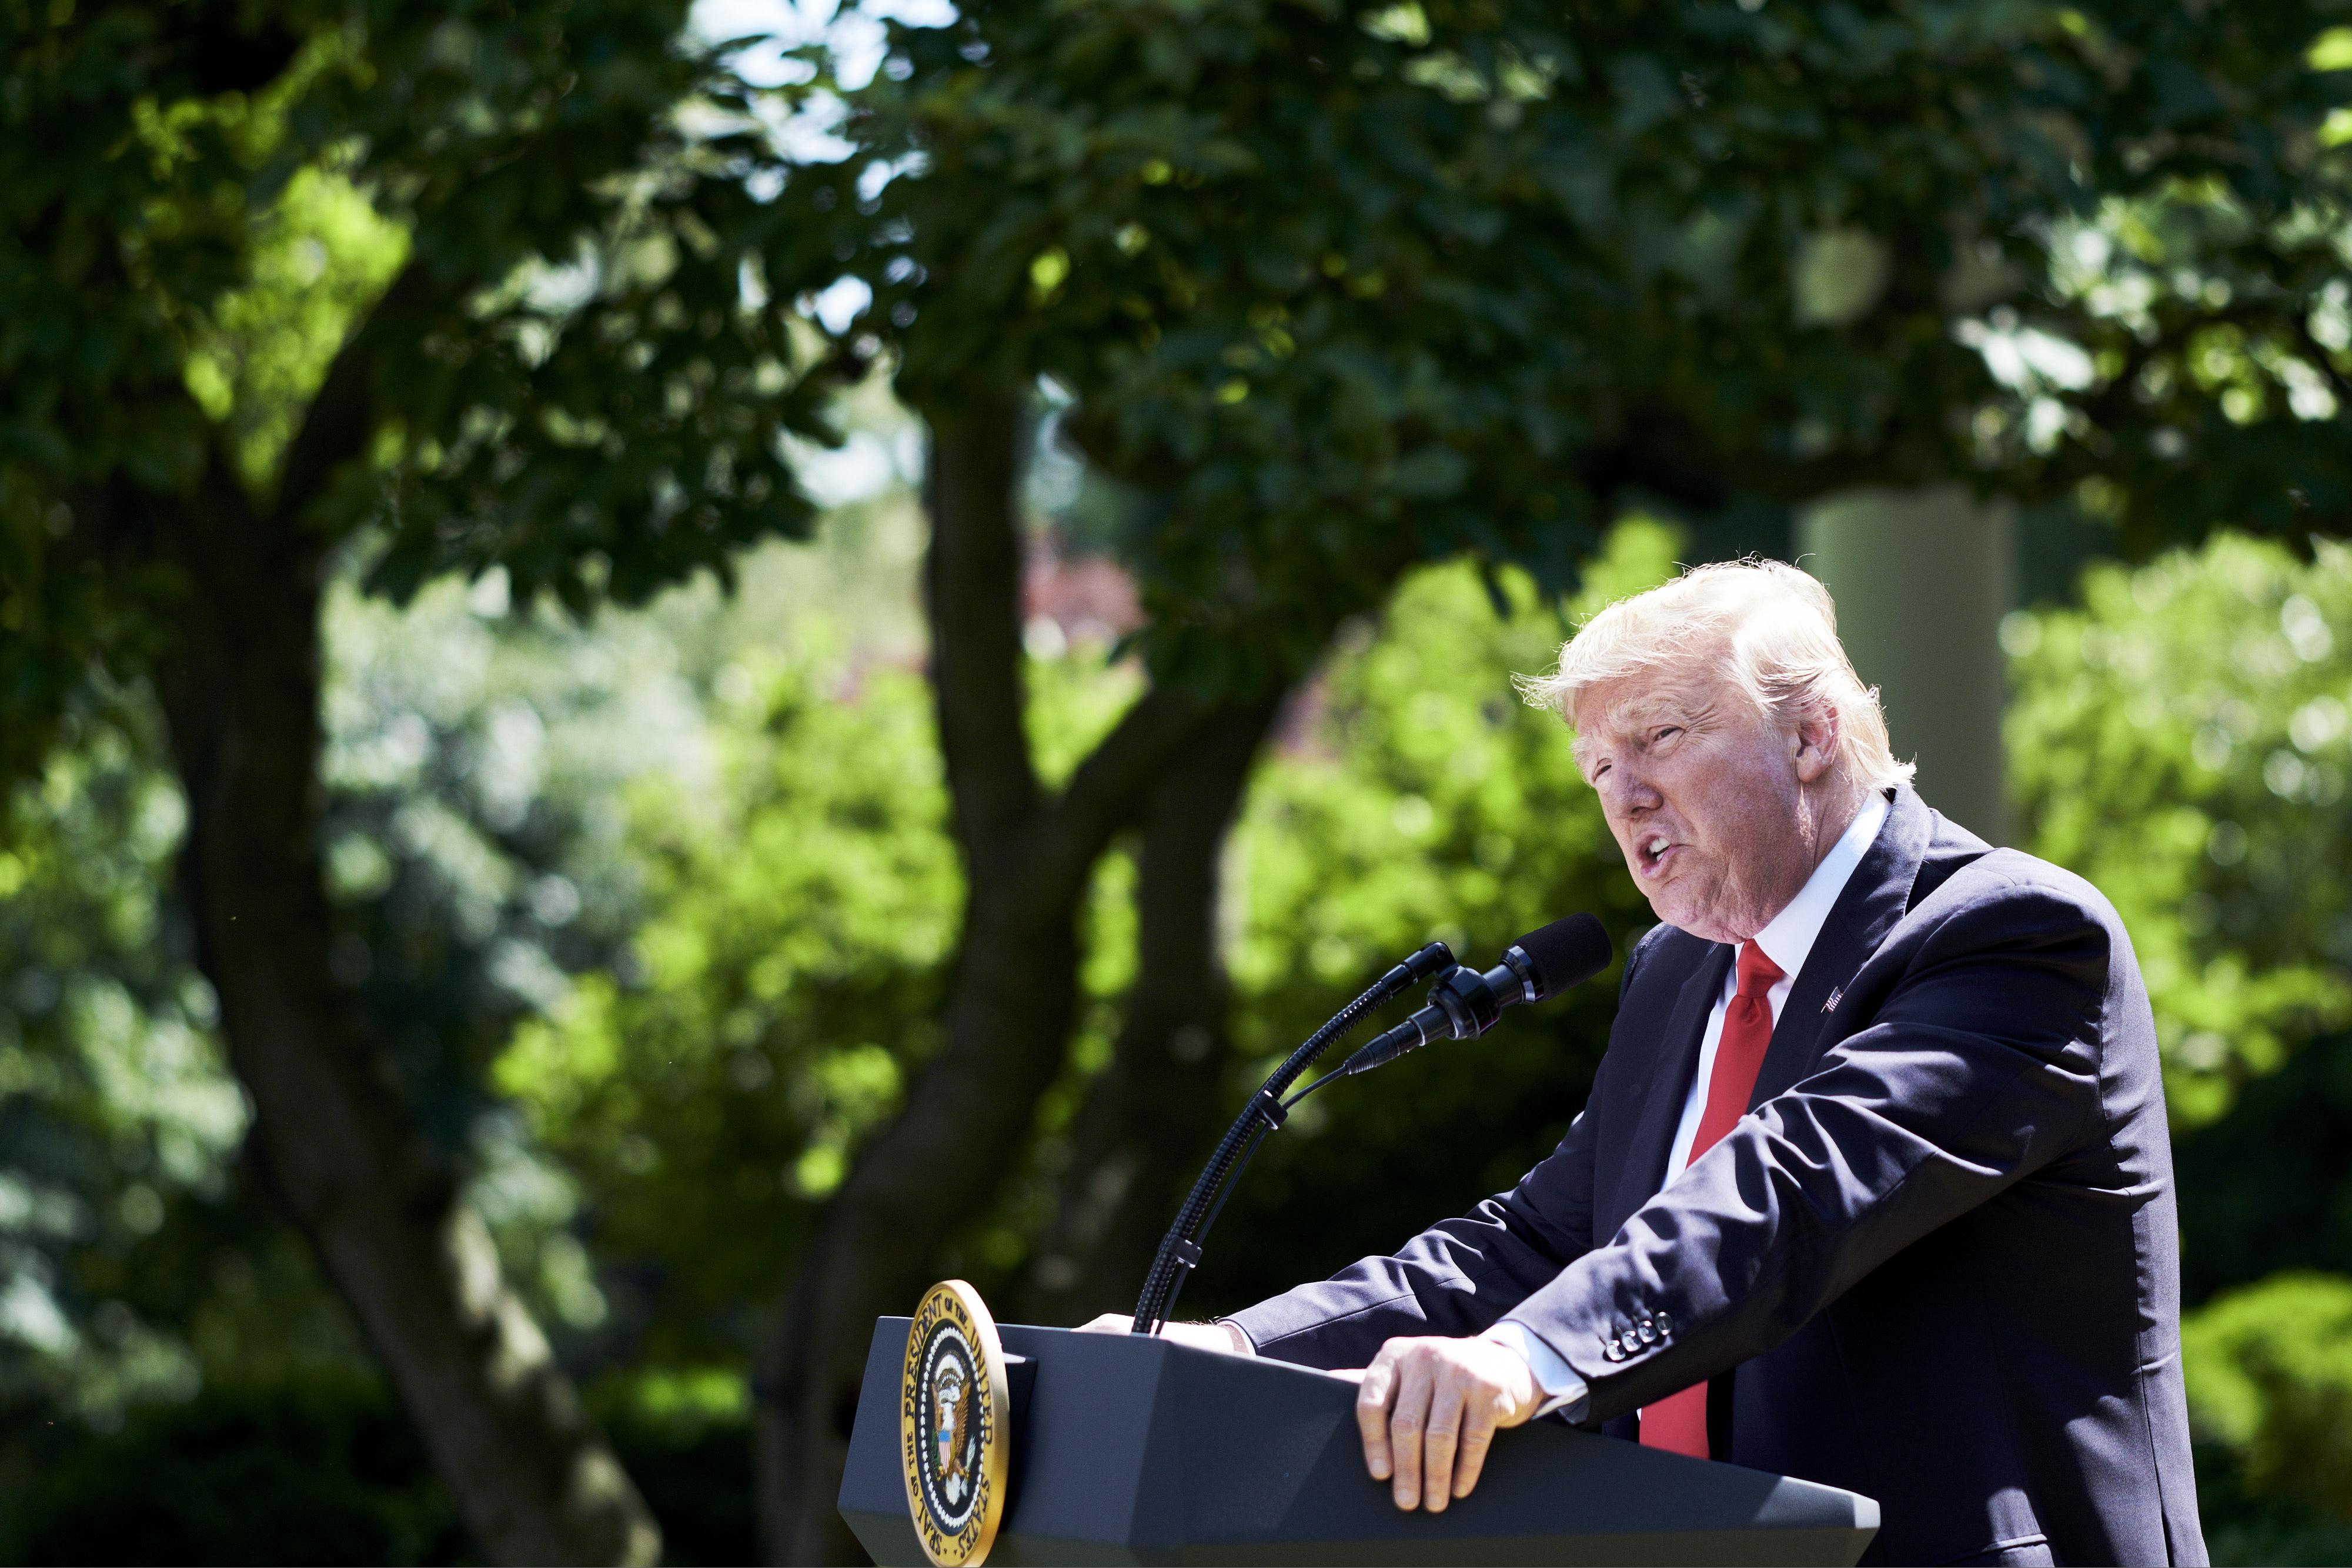 President Trump speaks during an announcement in the Rose Garden of the White House in Washington, D.C., U.S., on June 1, 2017.